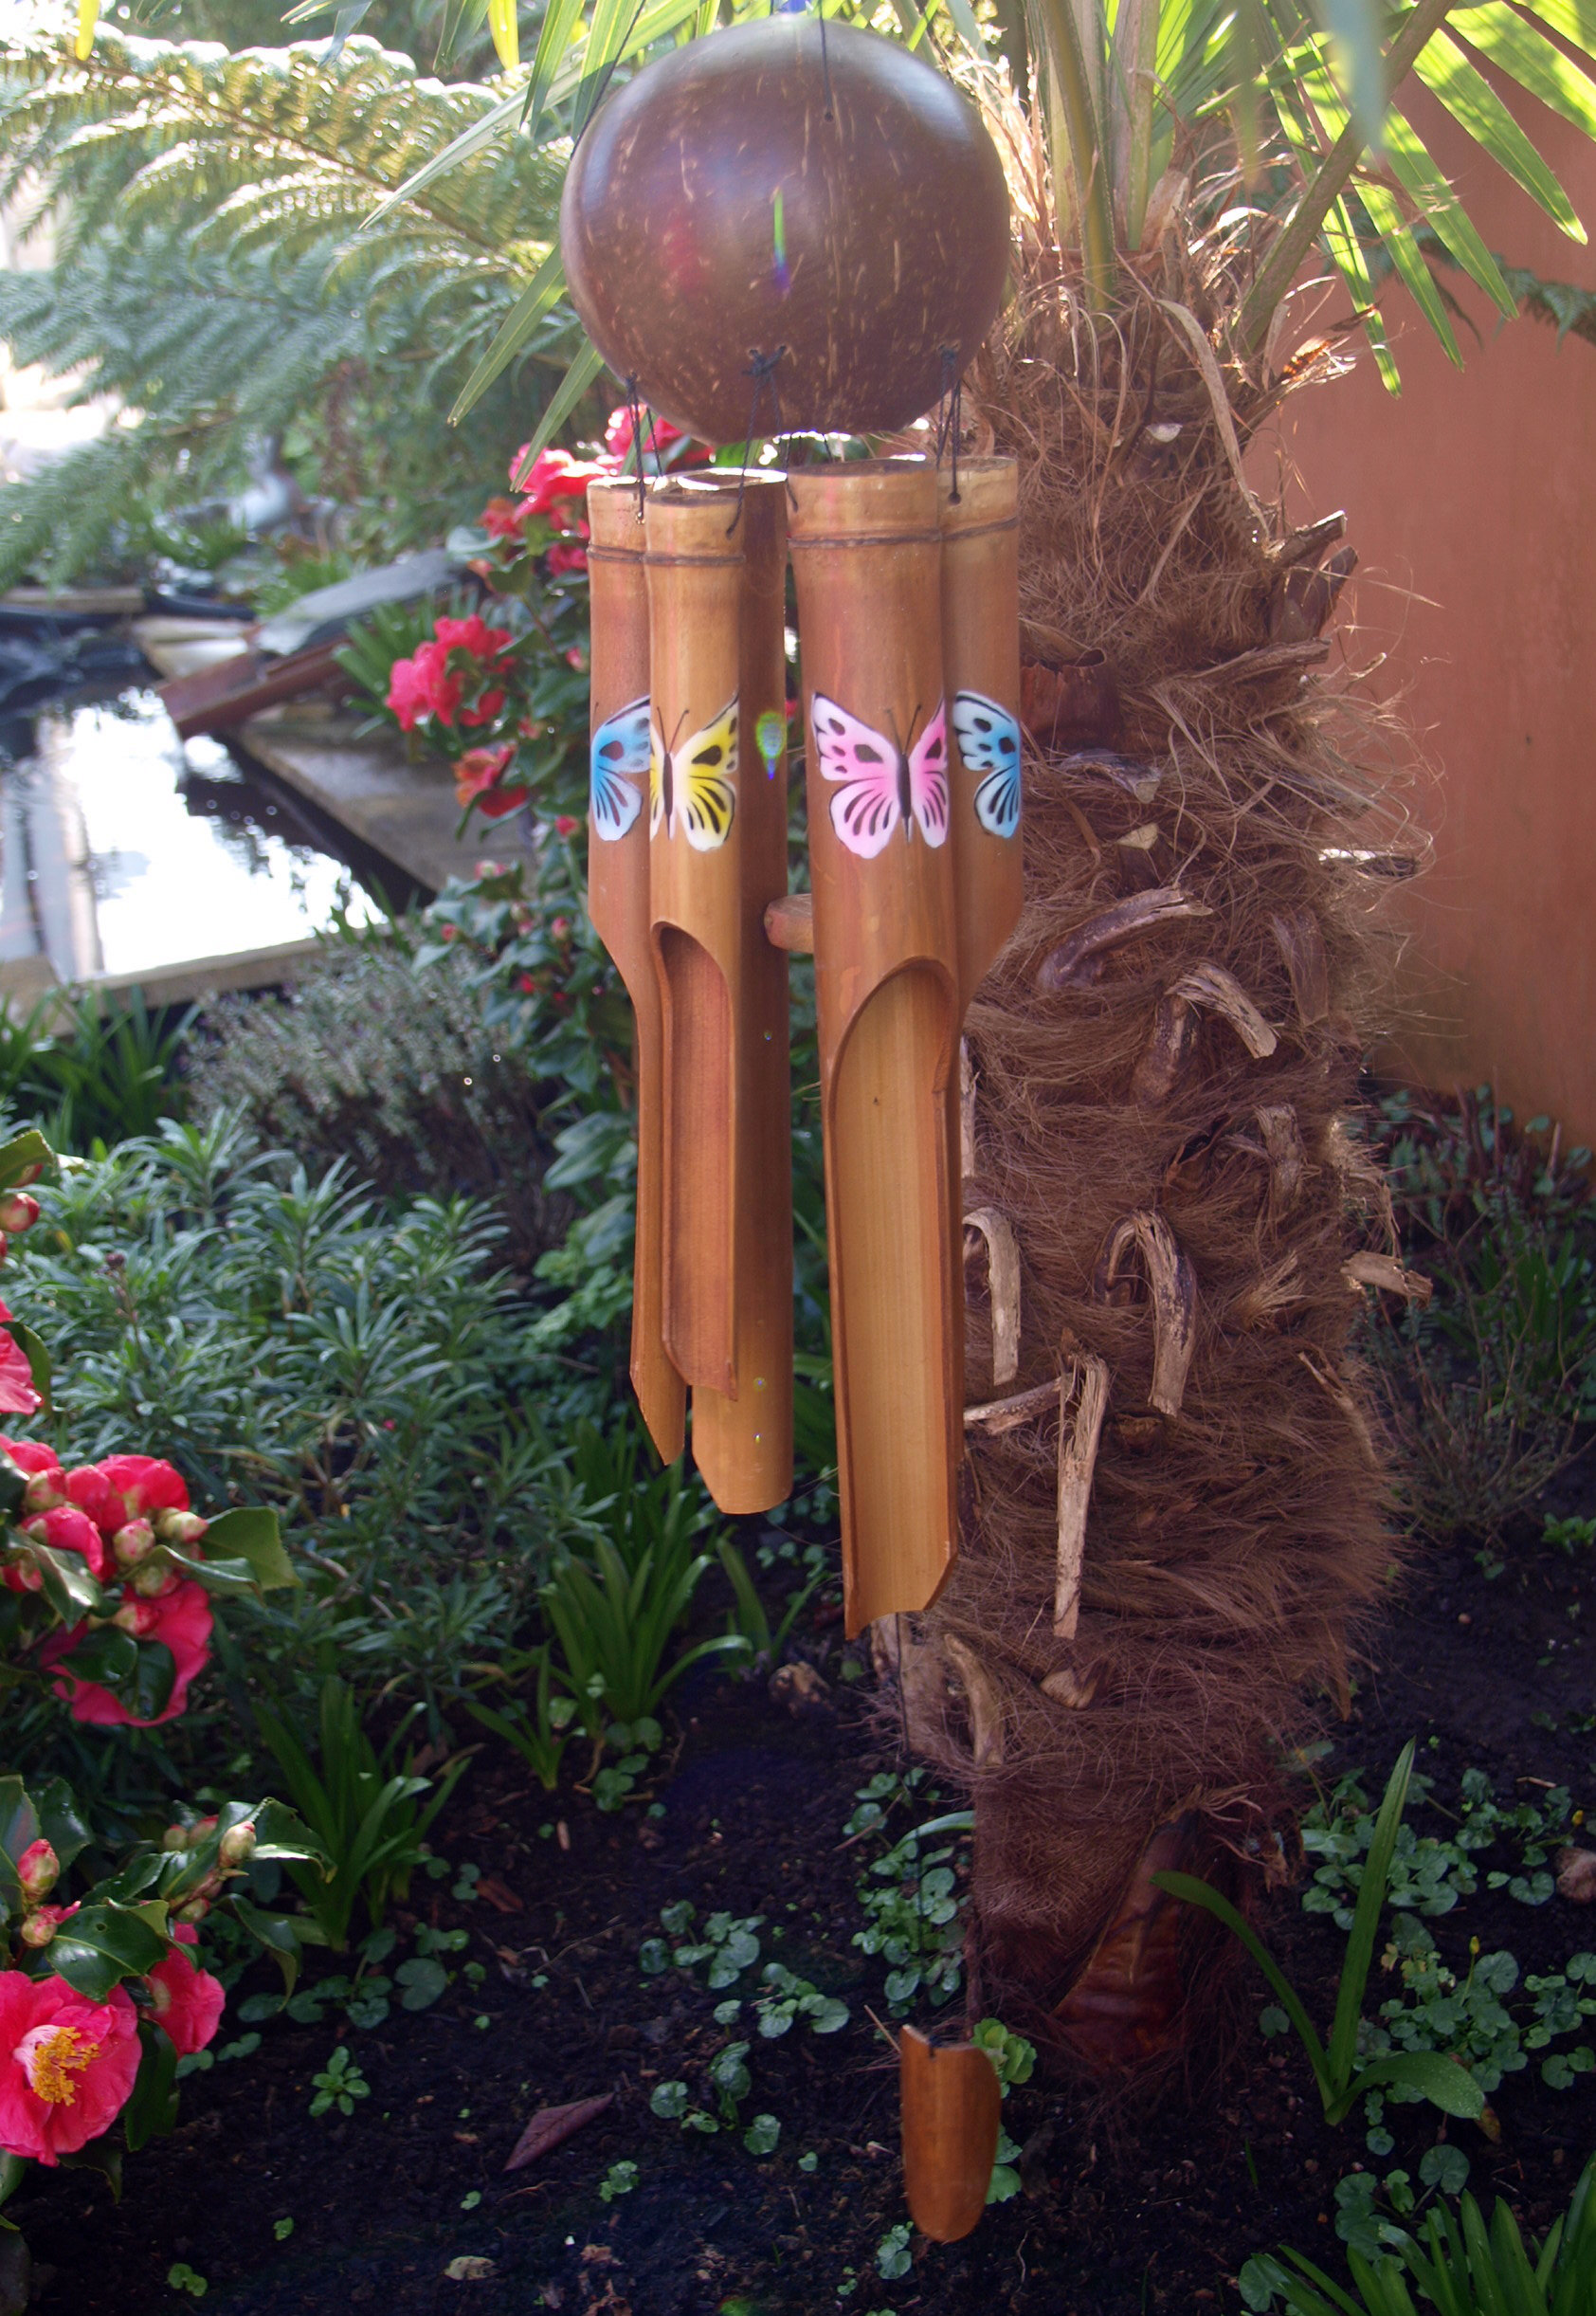 Large-Handmade-Fair-Trade-Coconut-And-Bamboo-Wind-Chime-Mobiles-6-Designs miniatuur 12